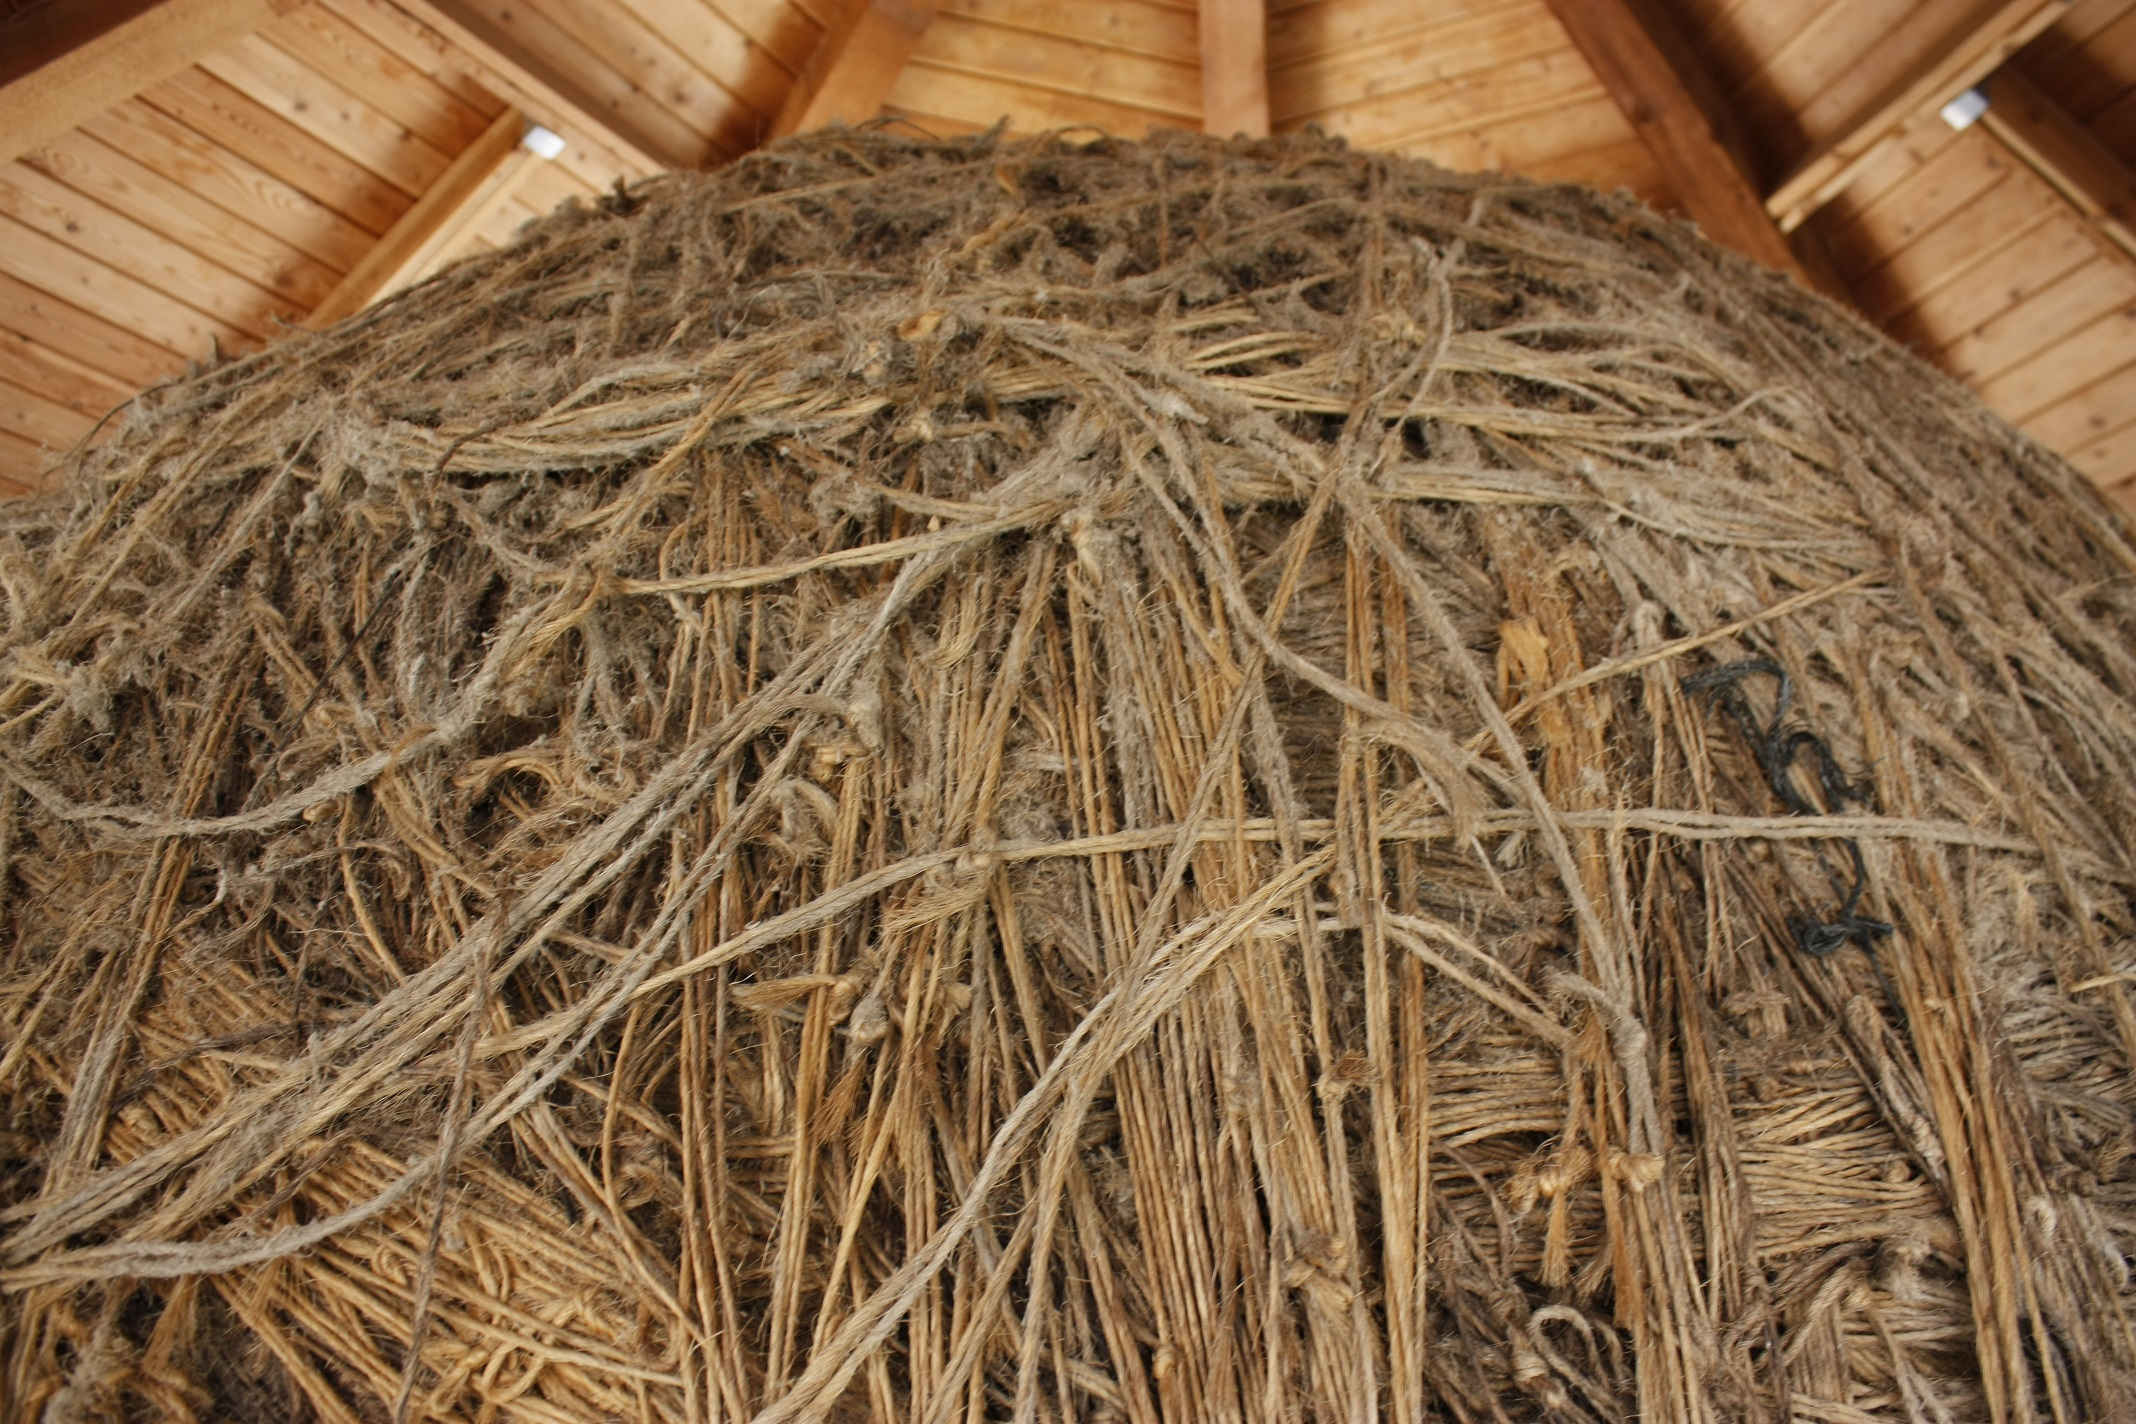 #2 World's Largest Twine Ball